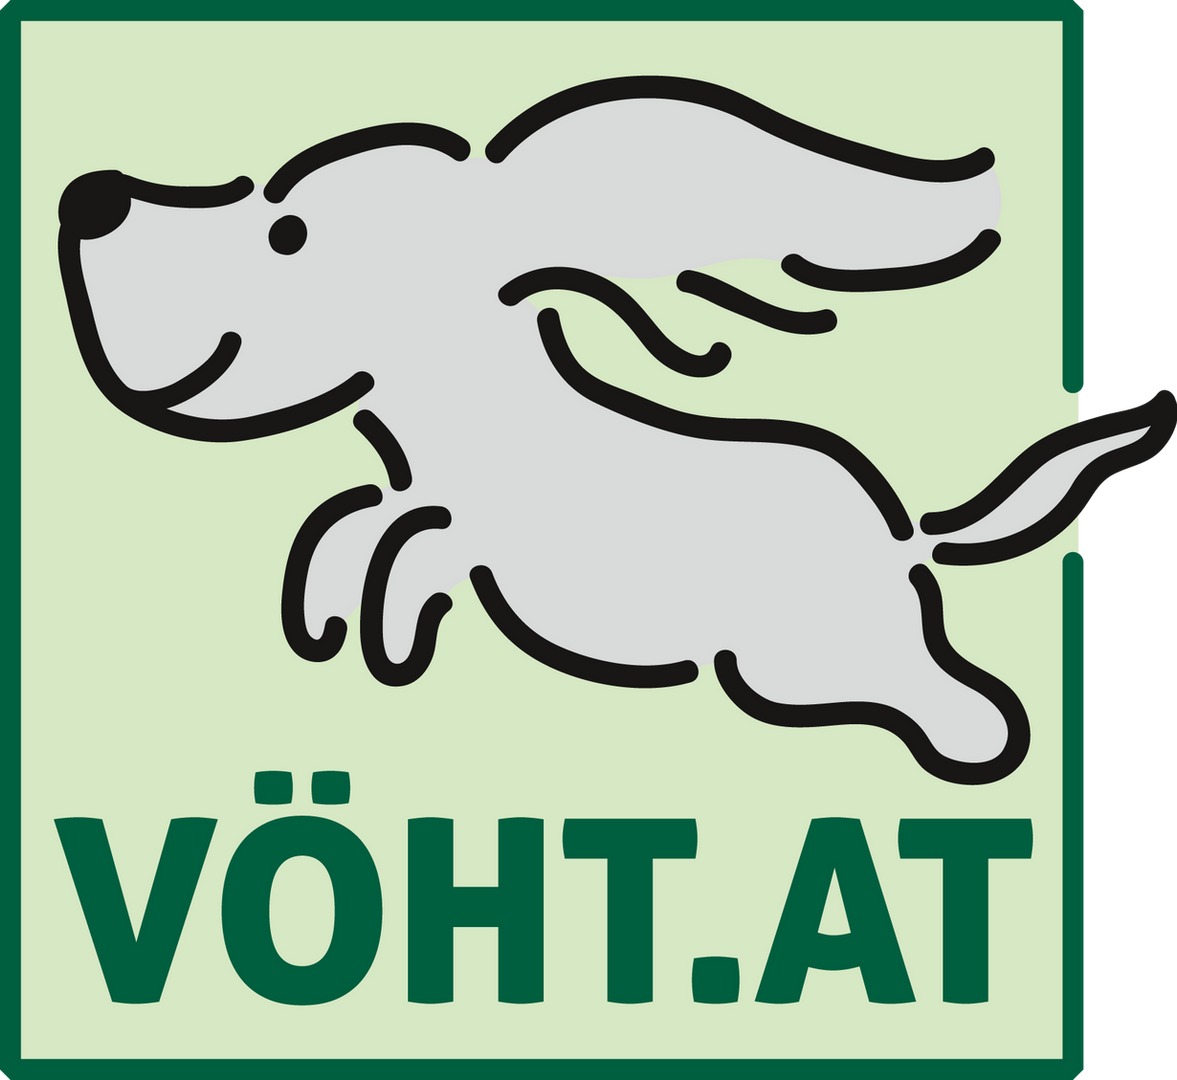 www.voeht.at